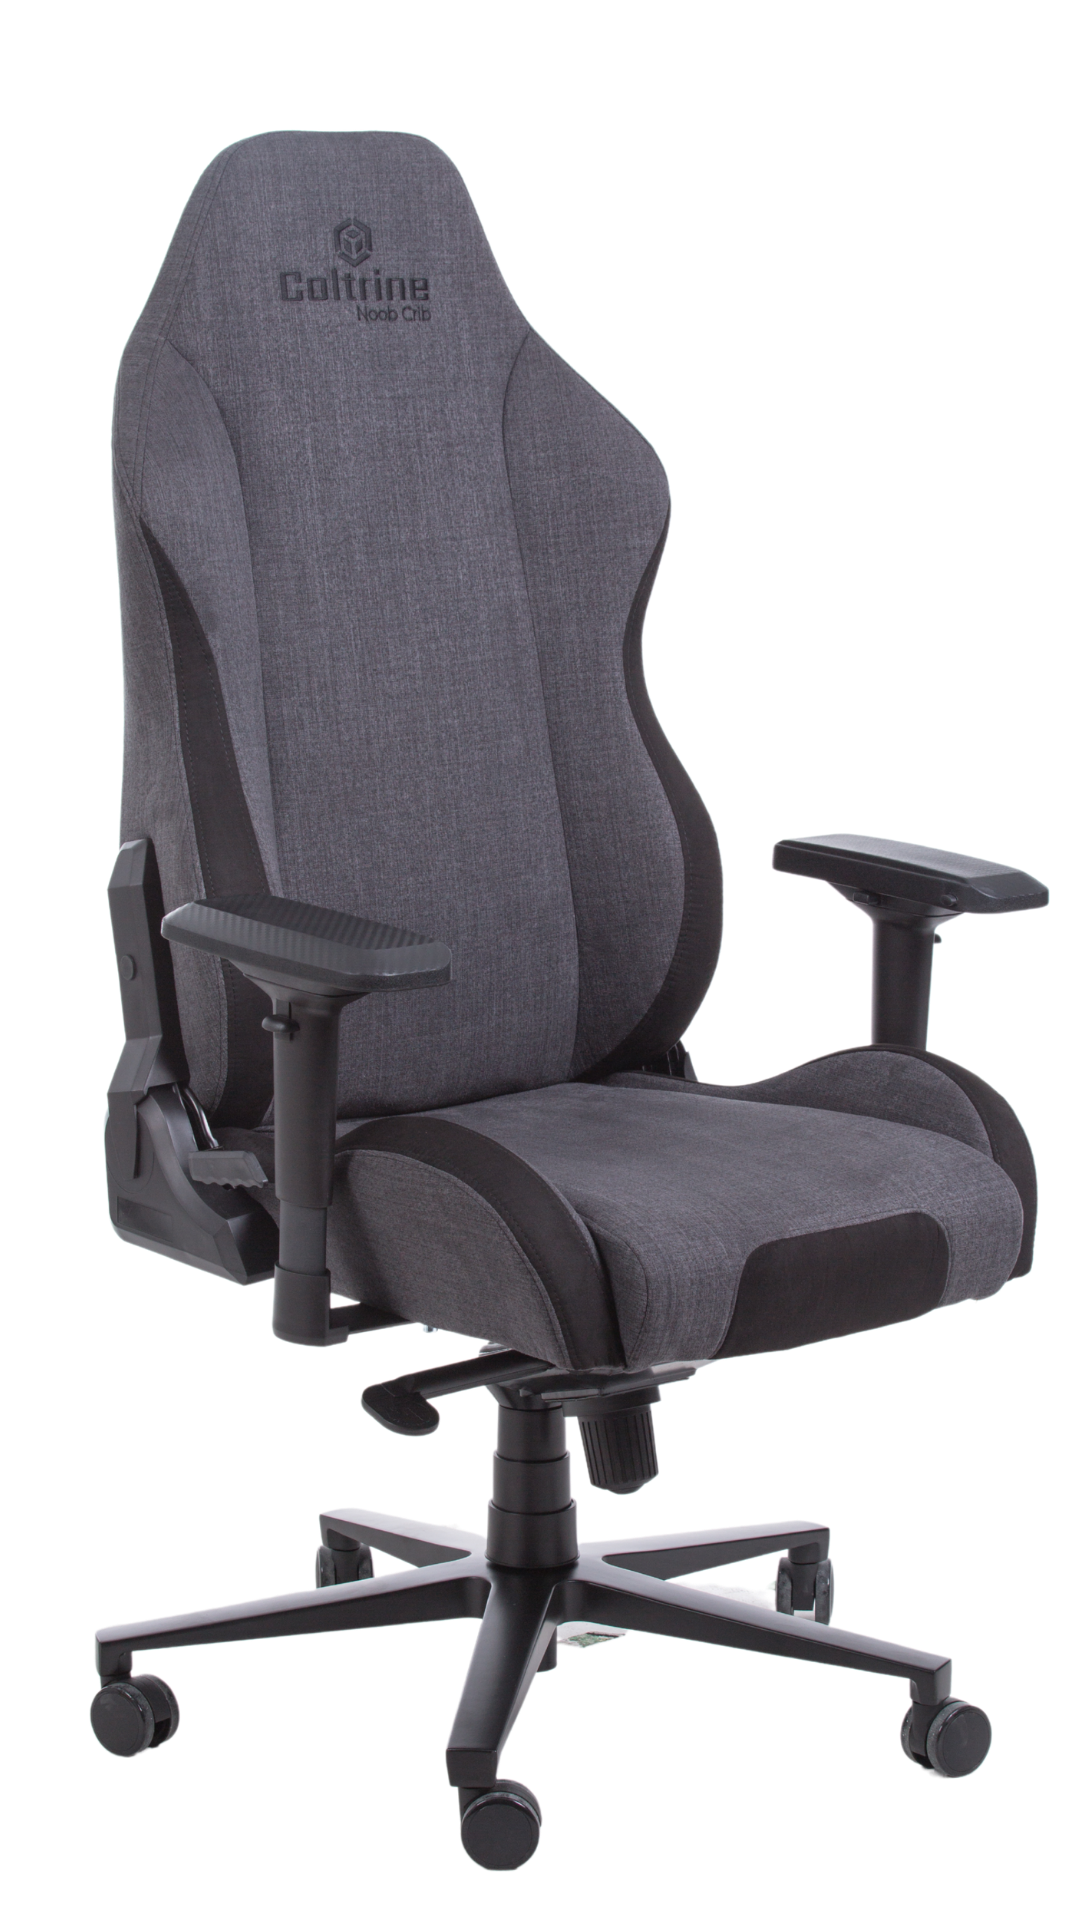 Ergonomic chairs are not only comfortable but can boost employee productivity and even save your business money!